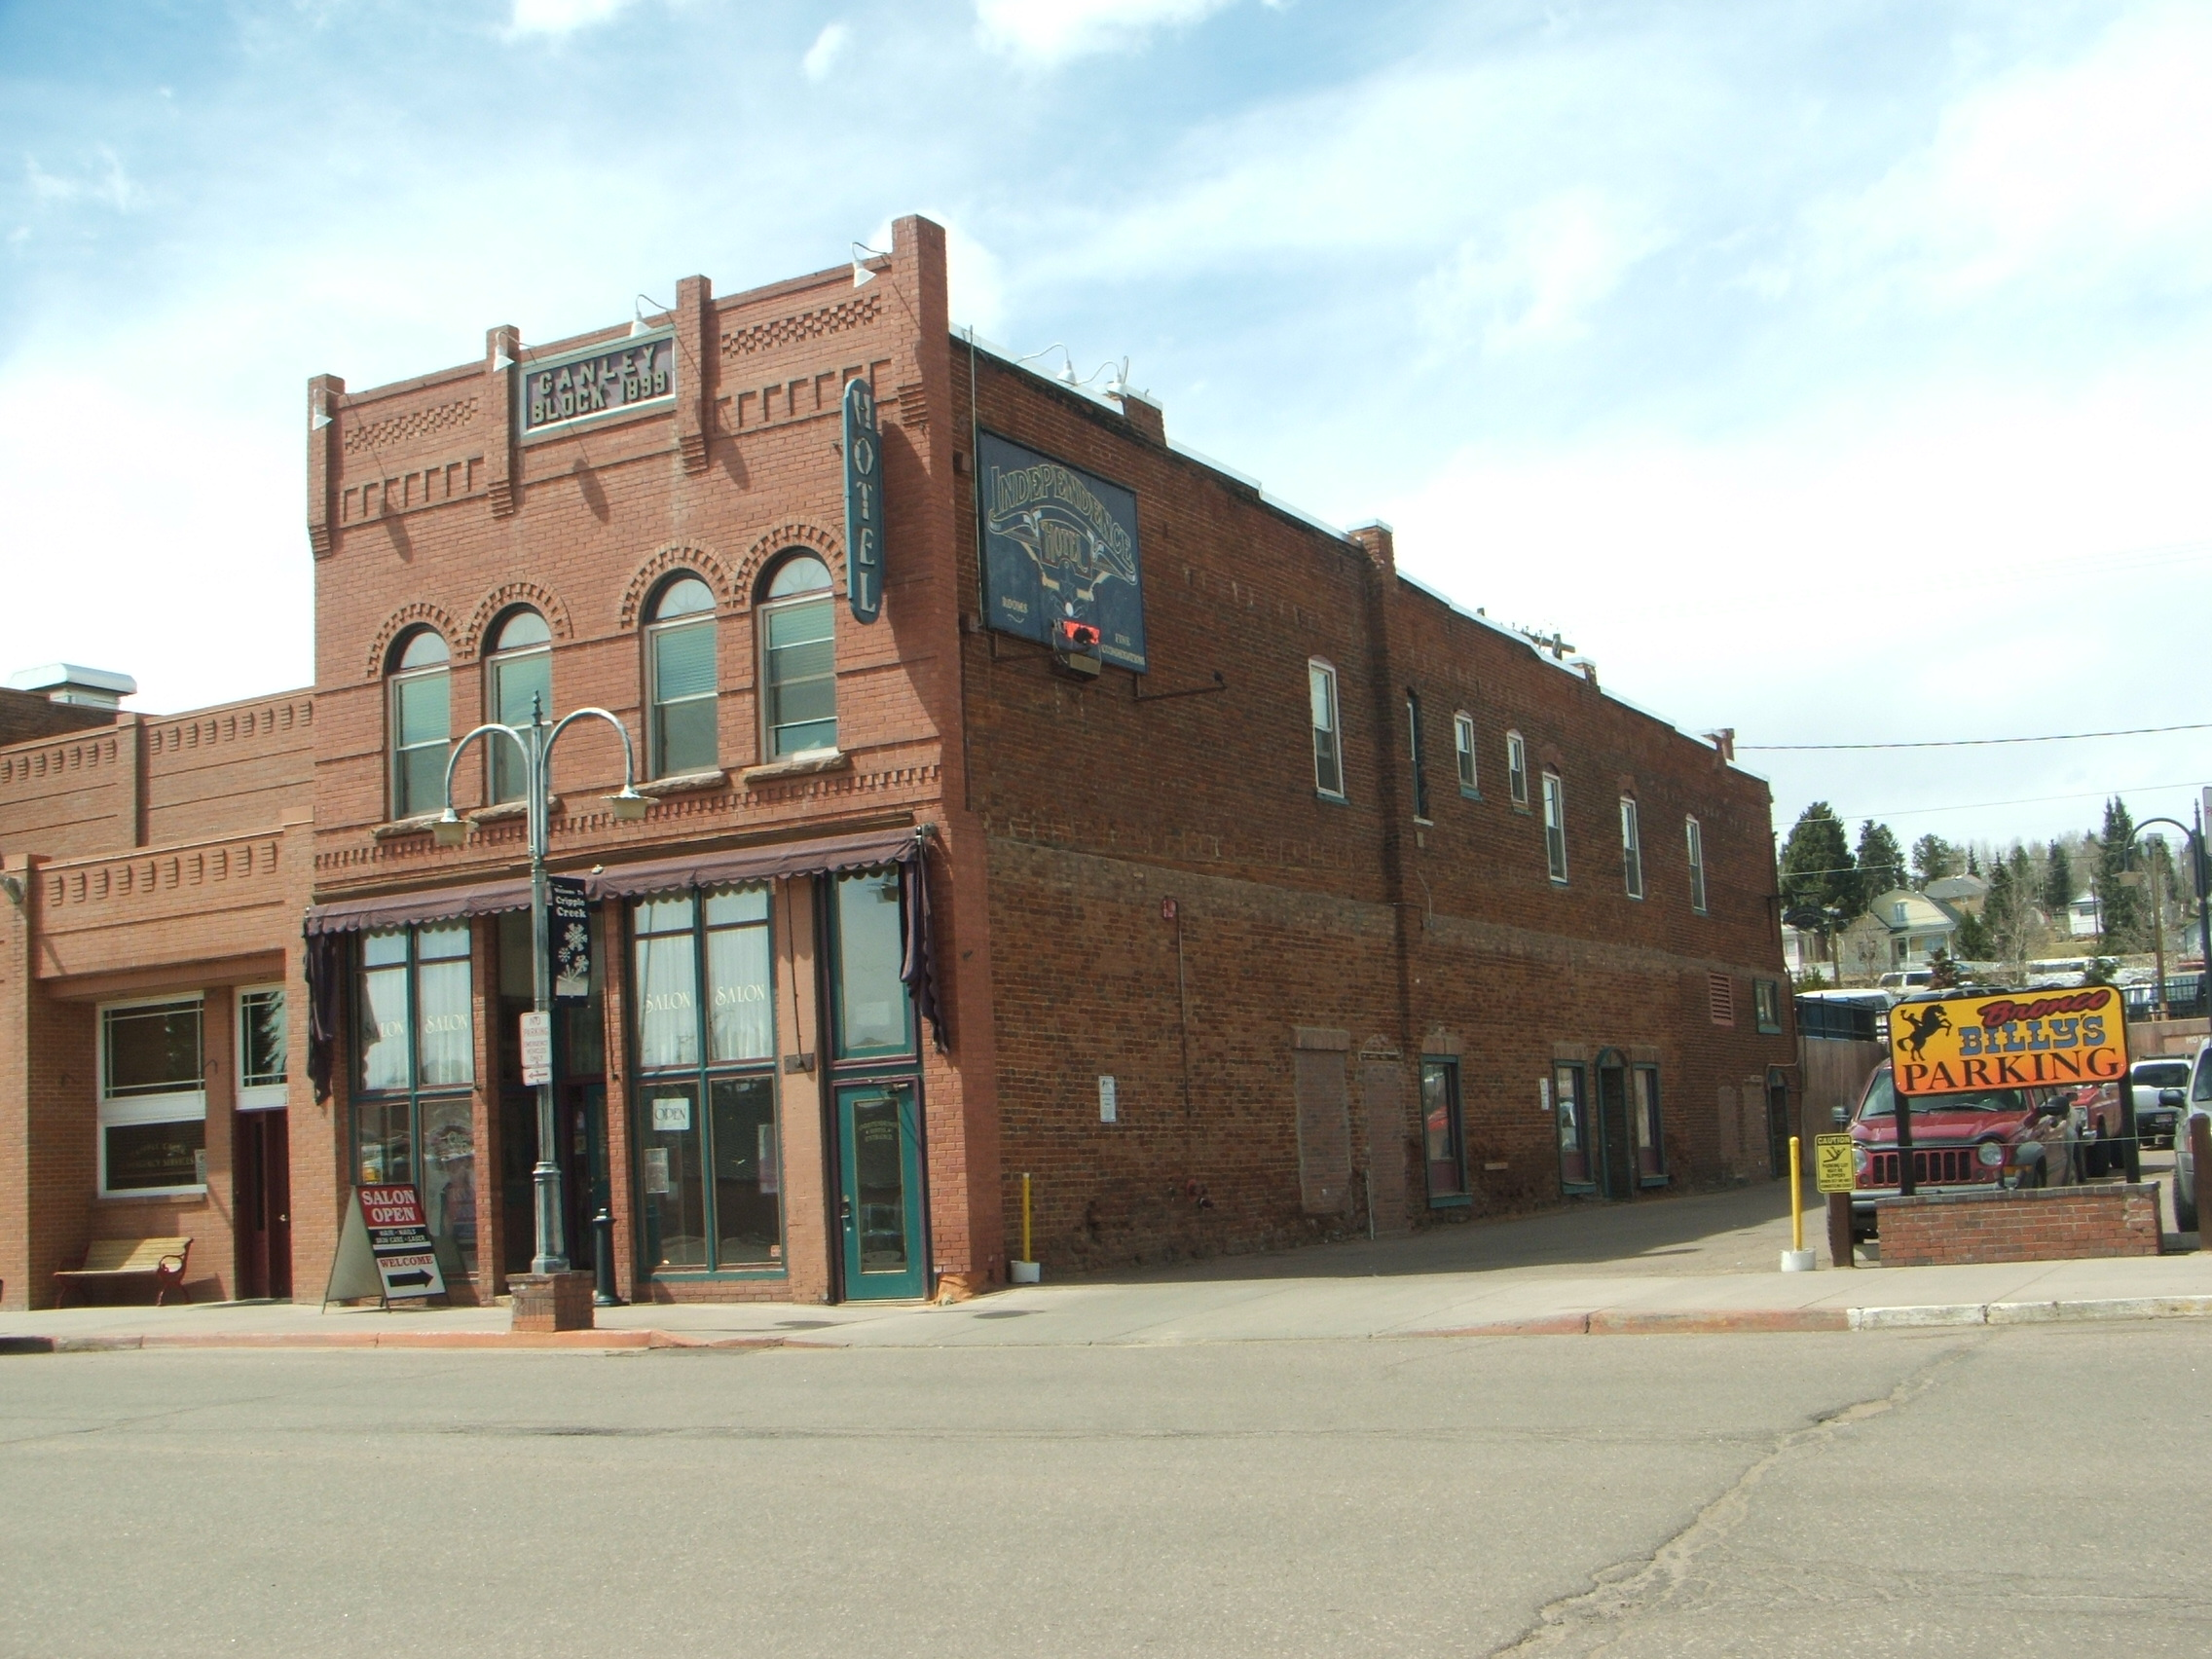 Bronco Billy's Hotel